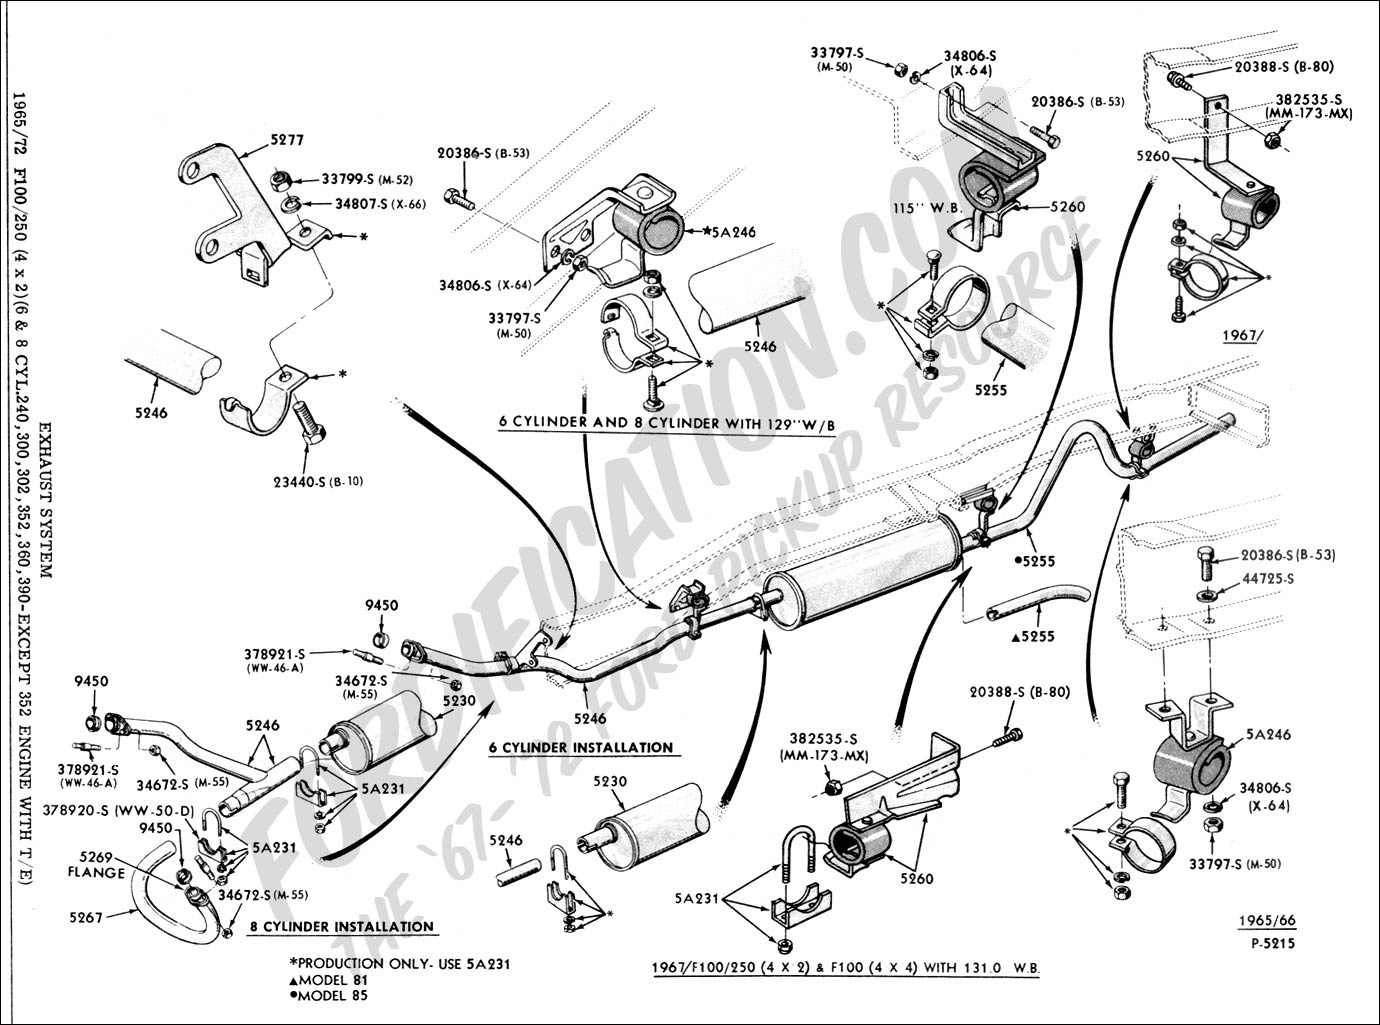 hight resolution of vacuum hose schematic 2001 f150 5 4l wiring diagram and f150 vacuum diagram 2008 f150 wiring